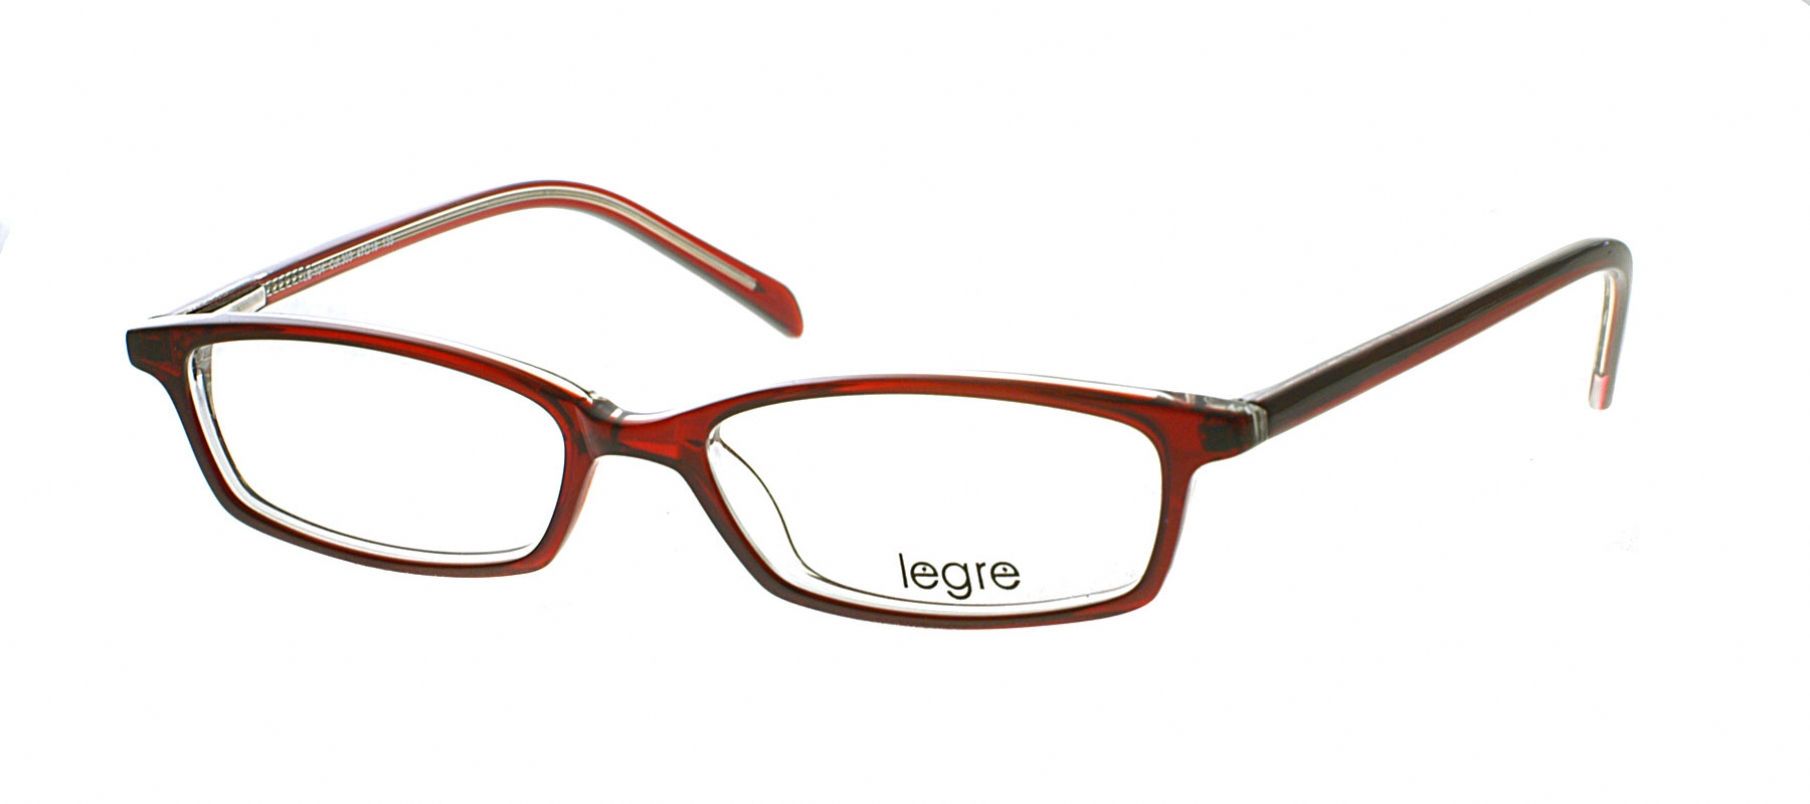 Optical Glasses Numbers : Buy Legre Eyeglasses directly from OpticsFast.com